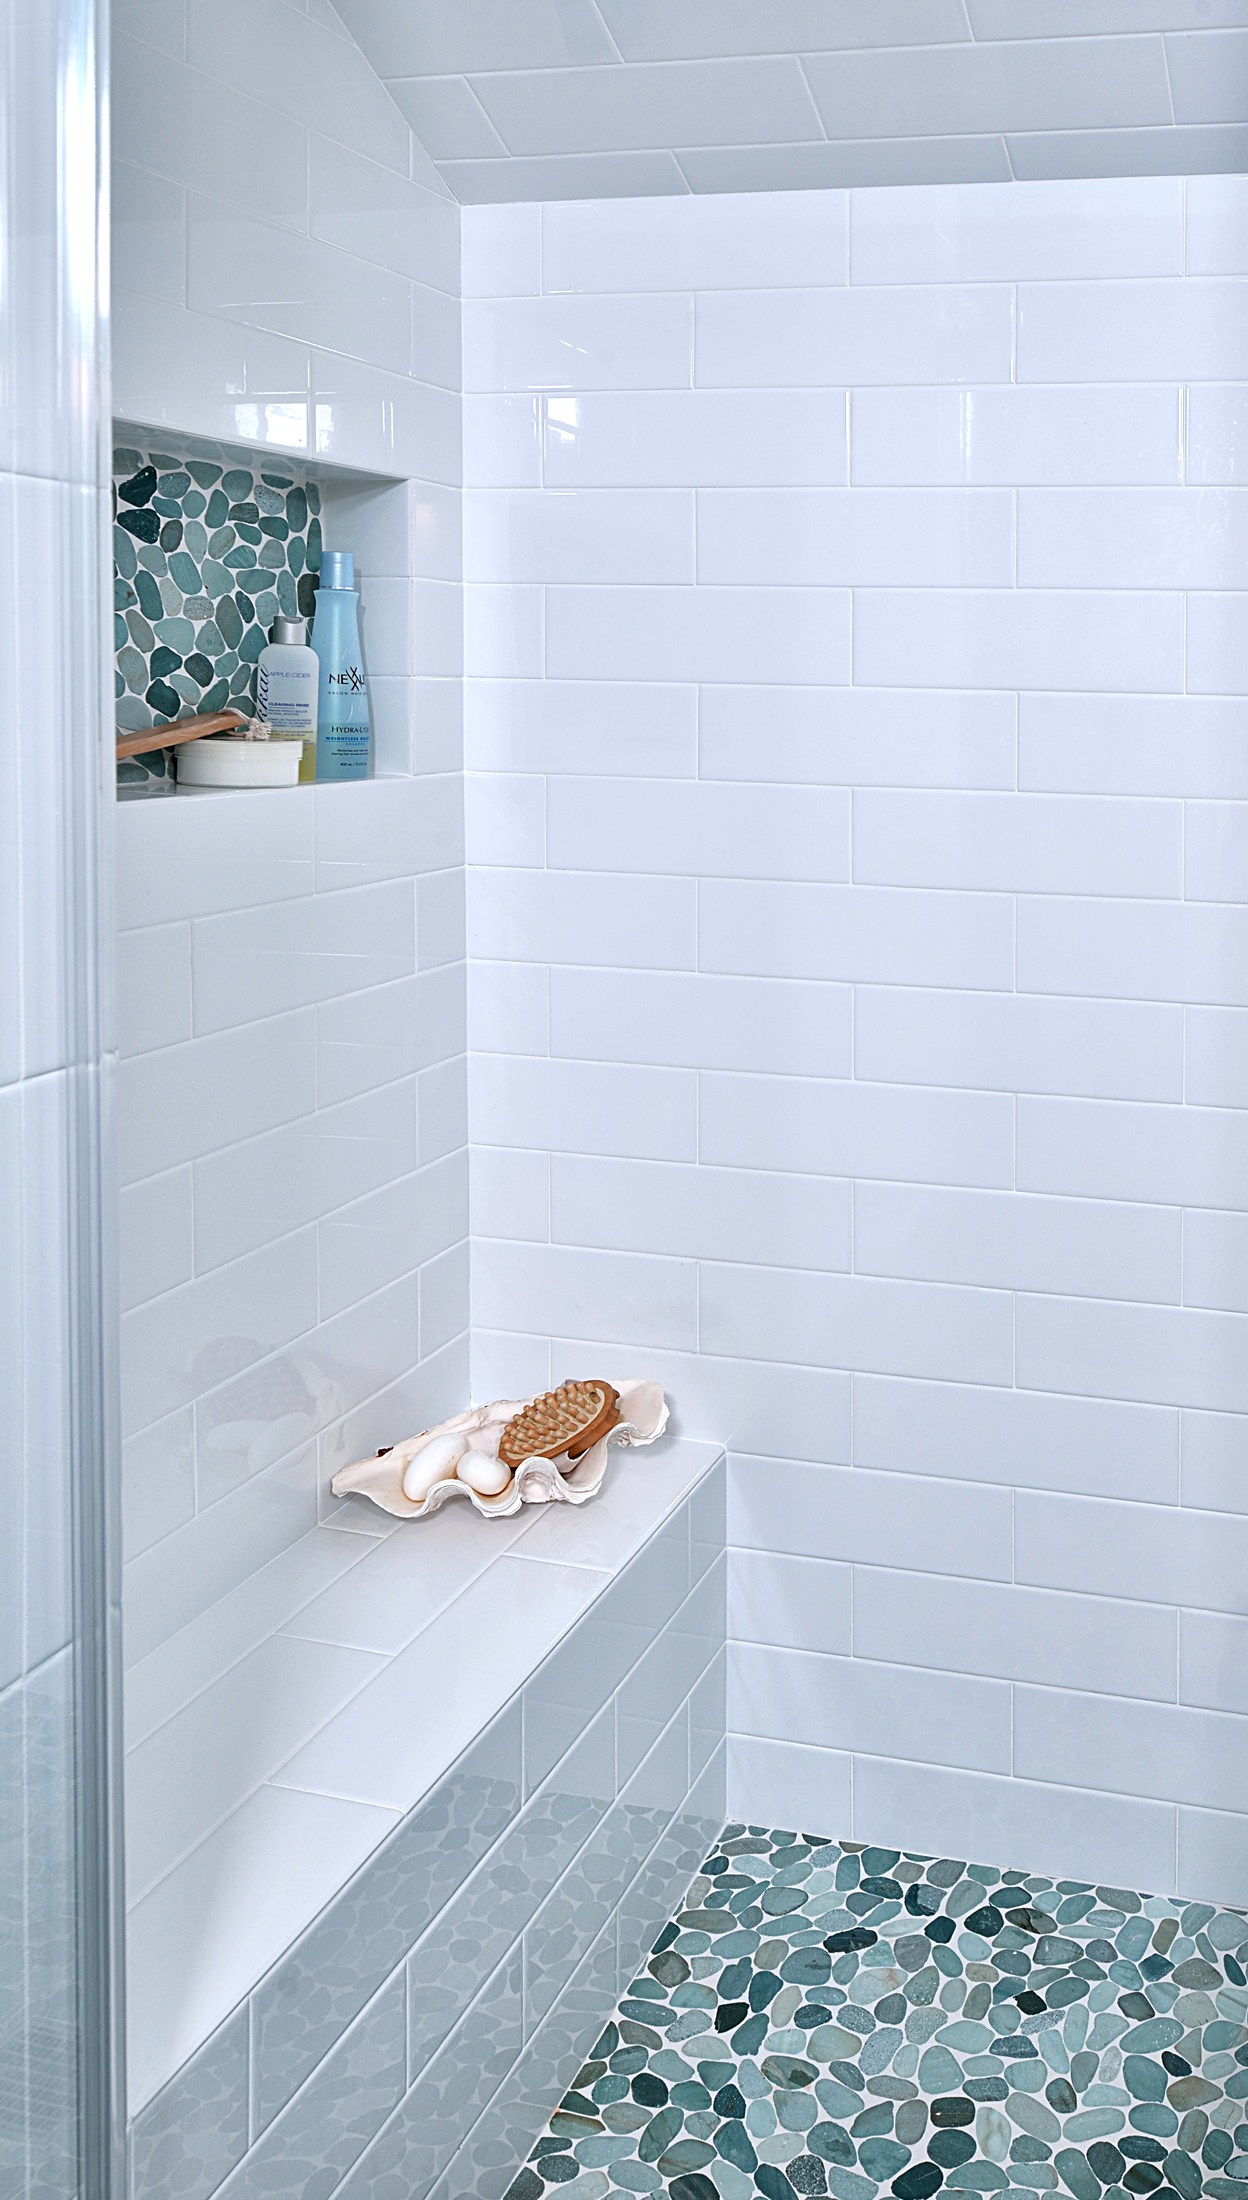 SEE THE FULL REMODEL:    Before & After: This Upstairs Bathroom Gets A Fresh Update    | Photographer: Miro Dvorscak